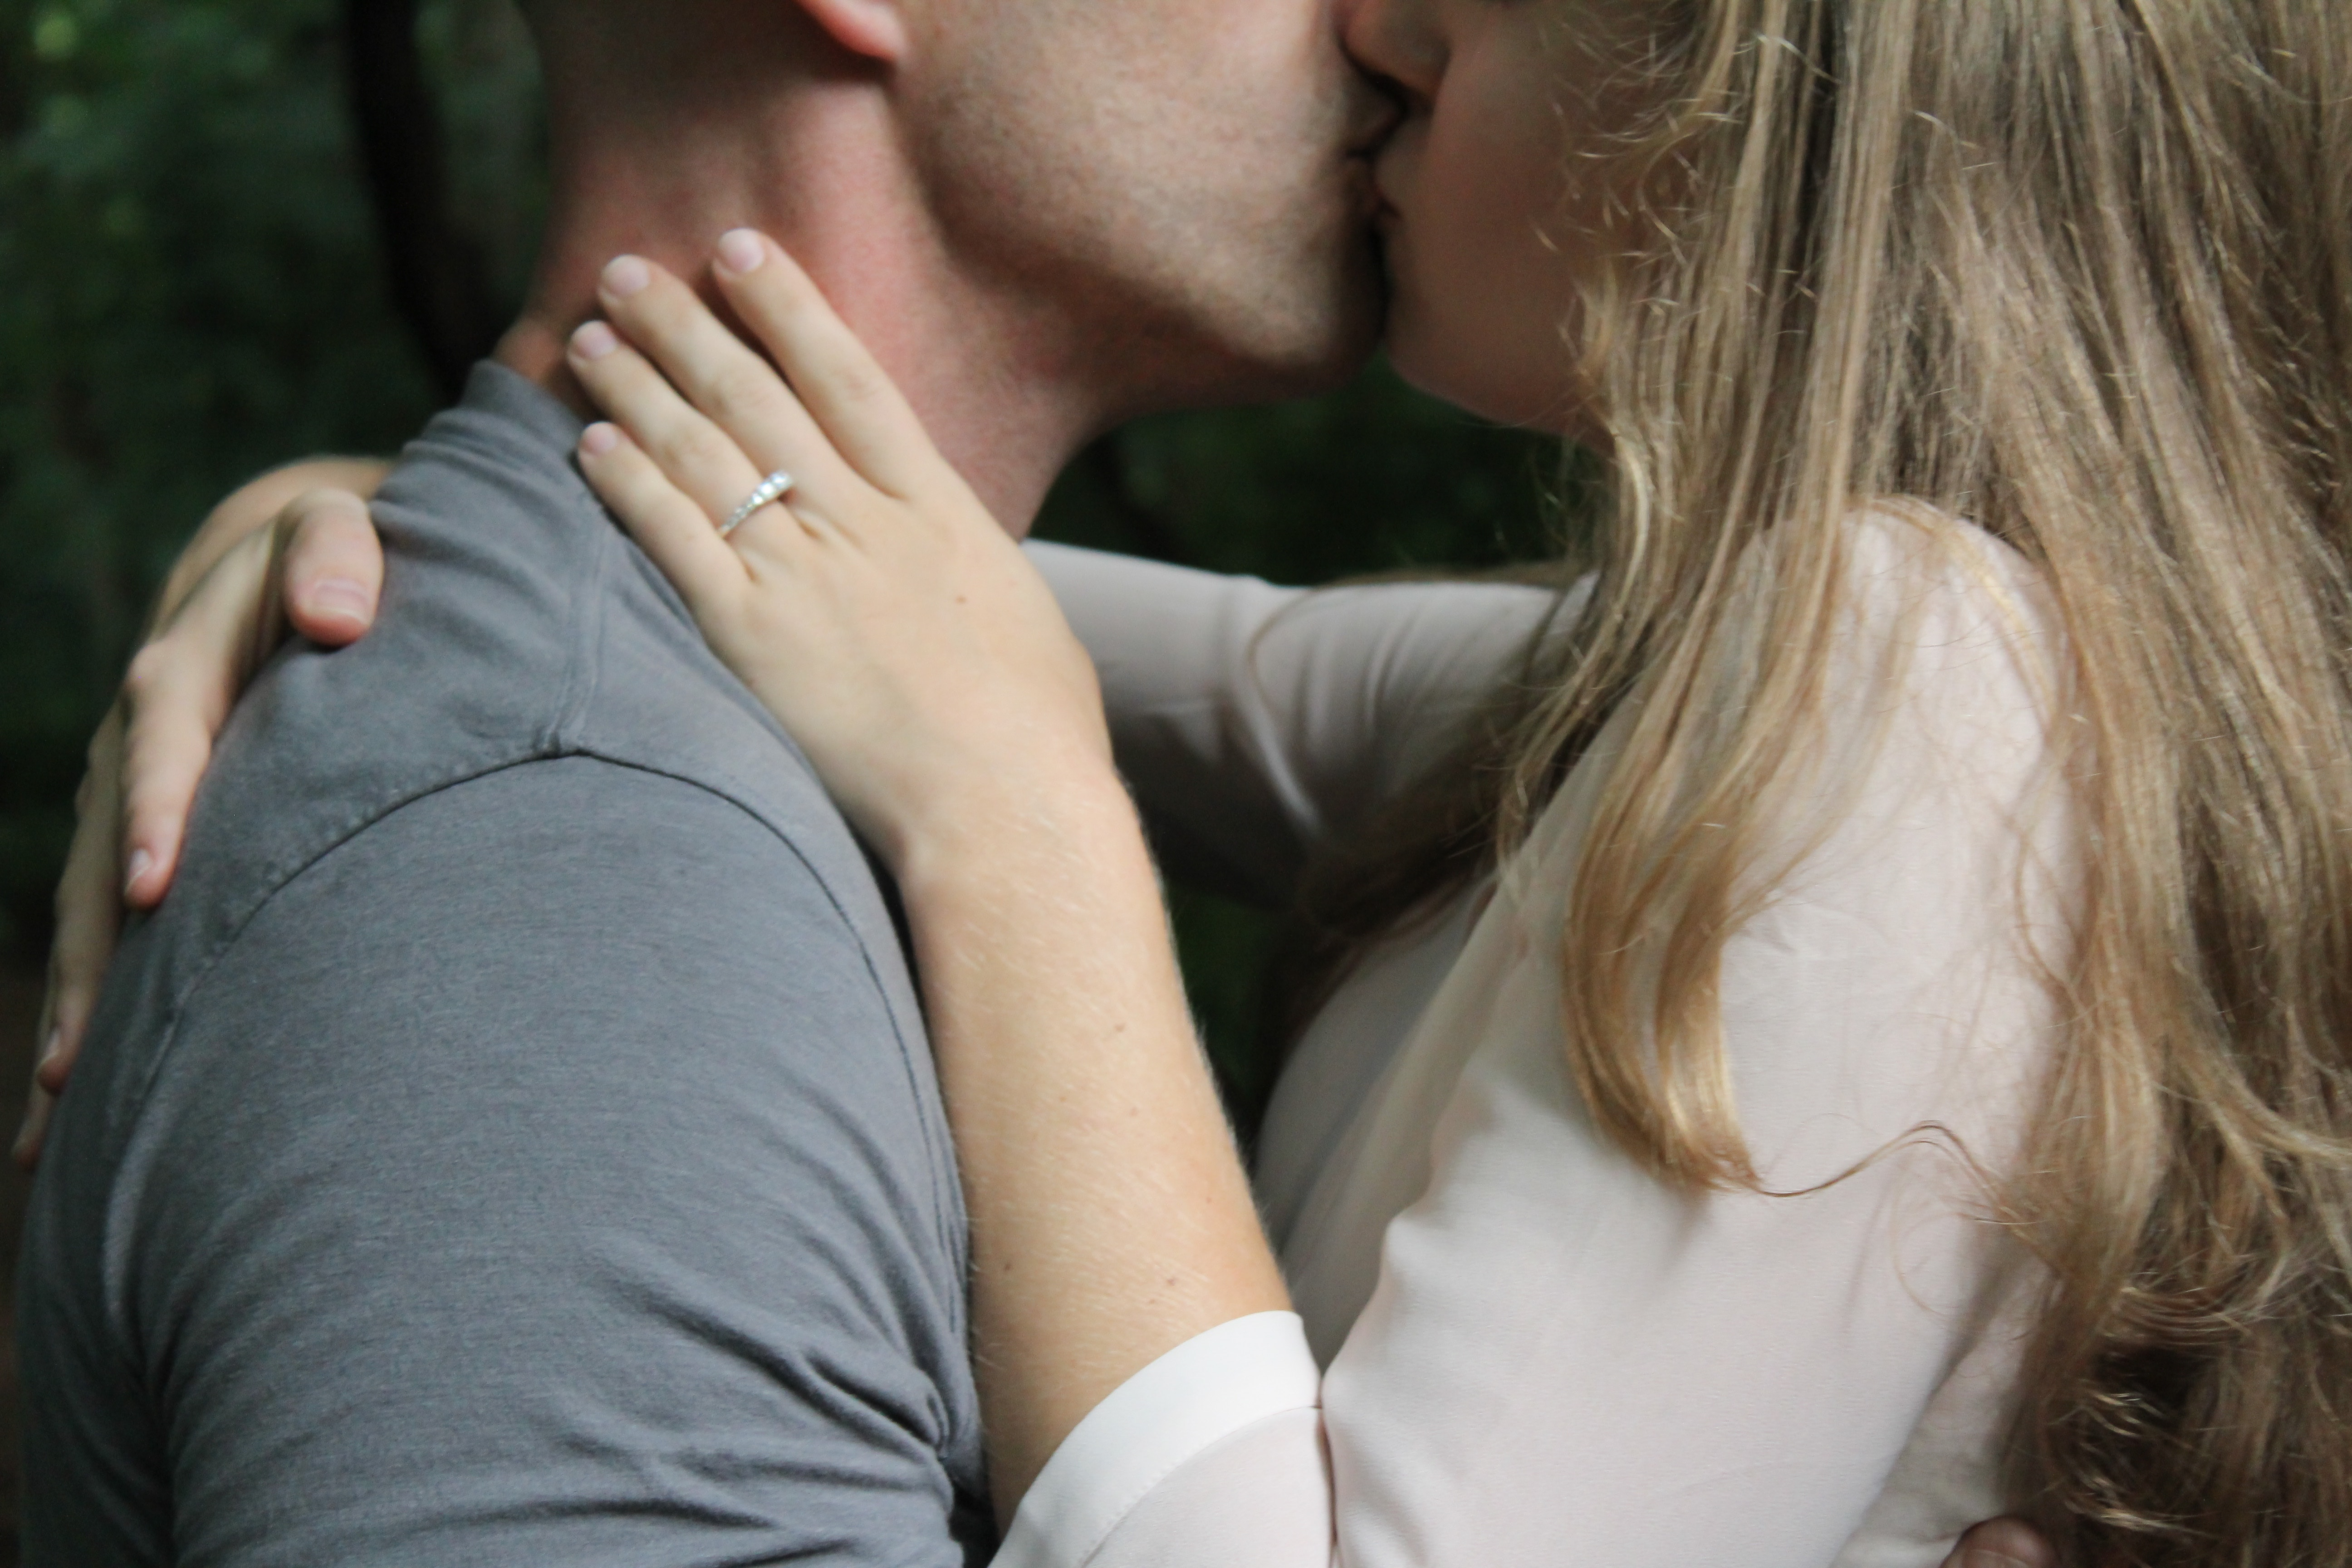 A man and a woman kissing without dress